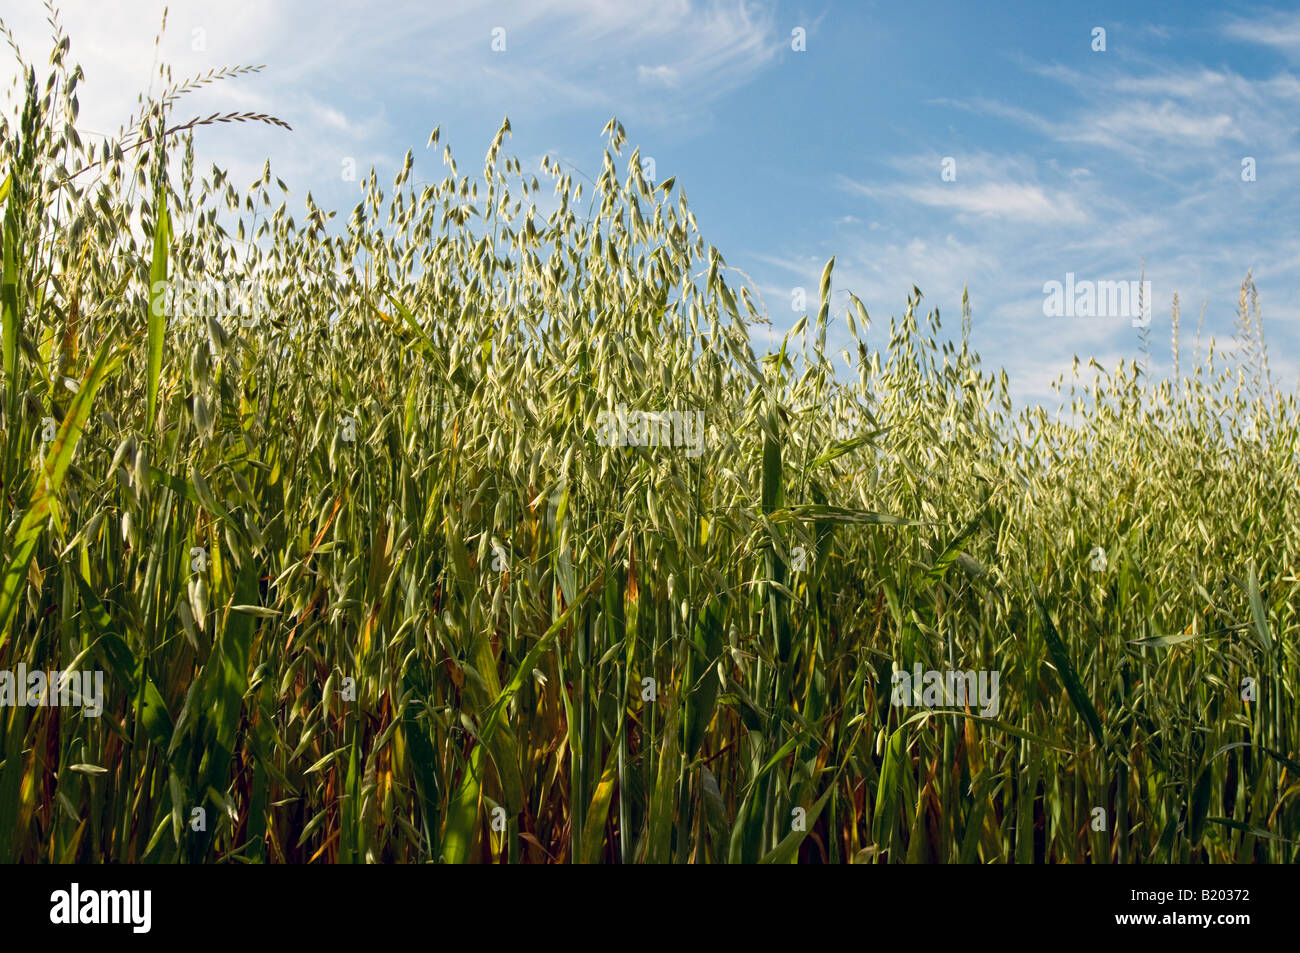 Oat field, sud-Touraine, France. - Stock Image